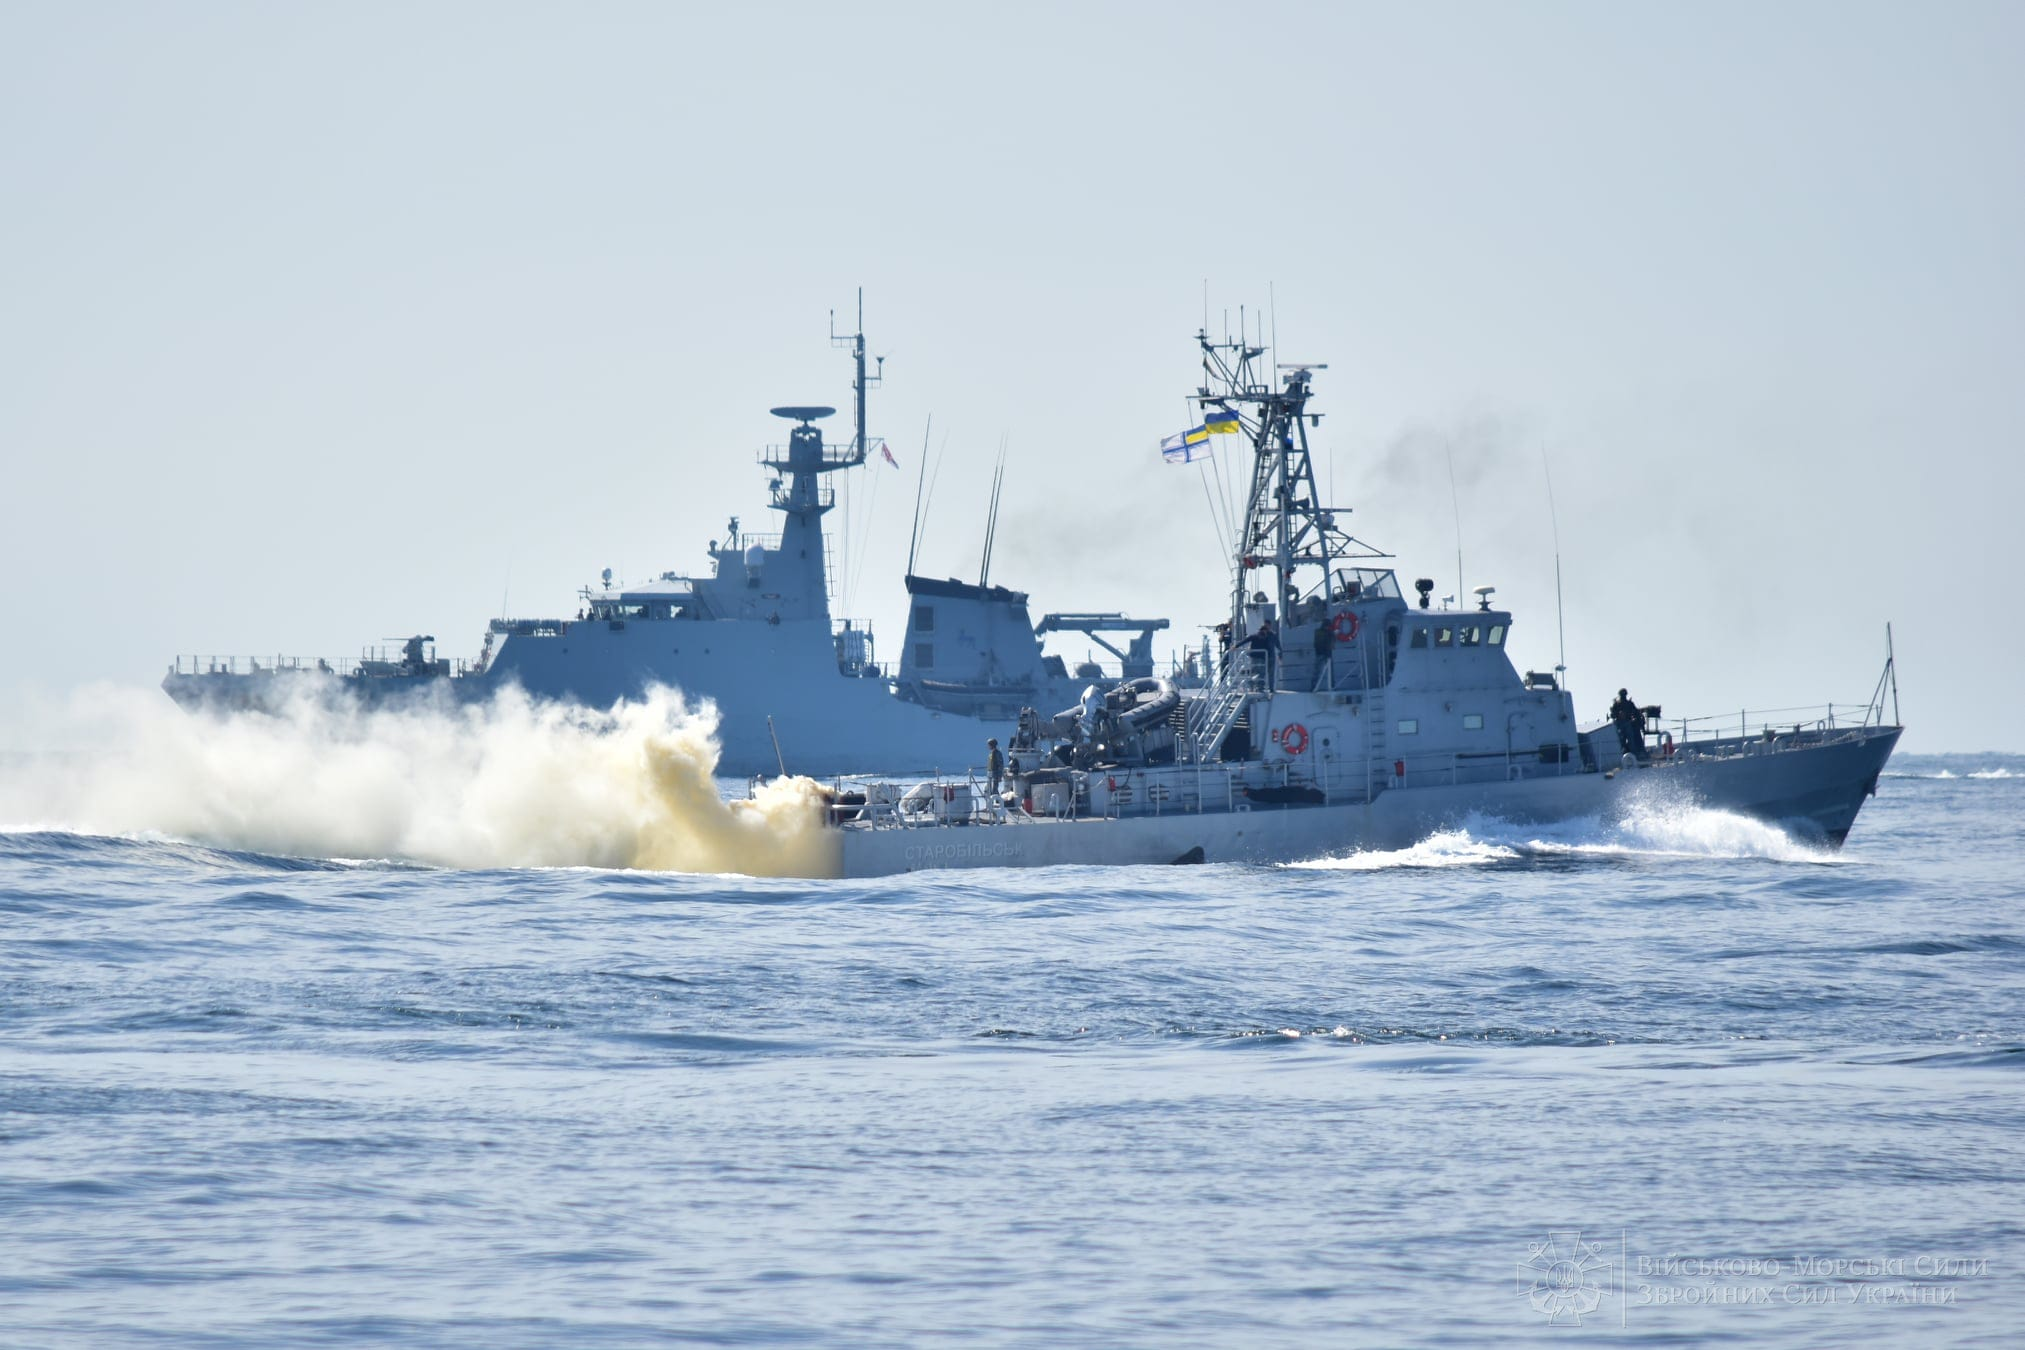 Naval forces of Ukrain conduct exercises in Black Sea together with Britain